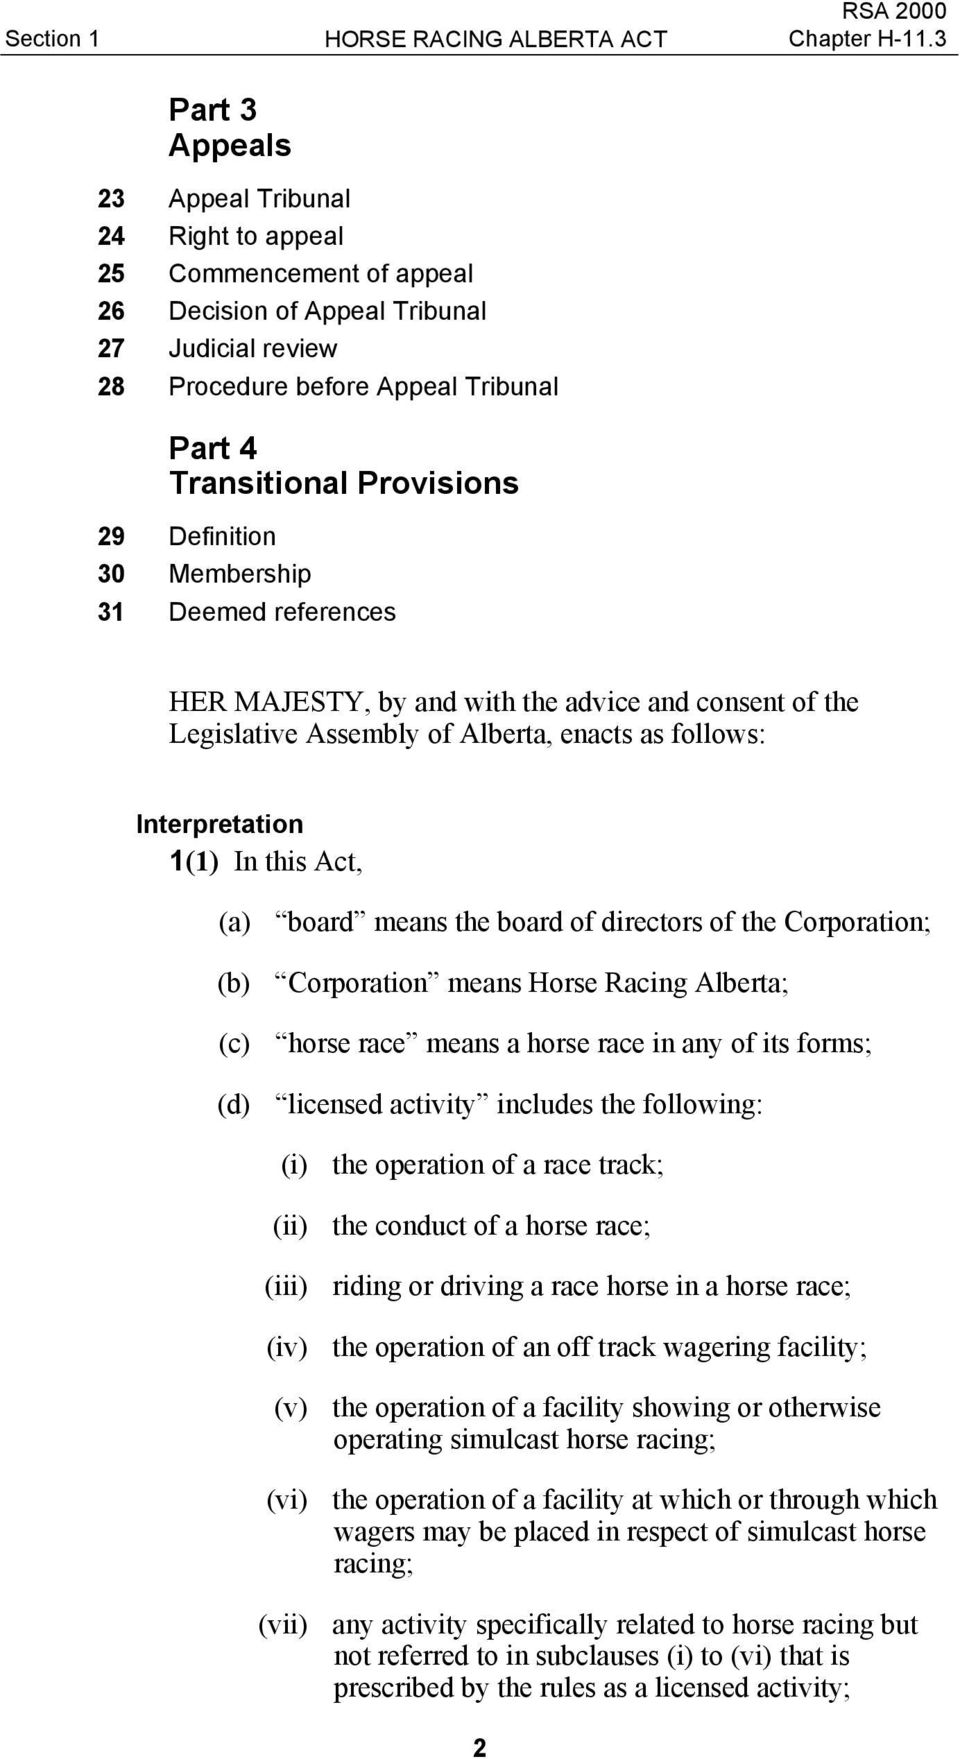 (a) board means the board of directors of the Corporation; (b) Corporation means Horse Racing Alberta; (c) horse race means a horse race in any of its forms; (d) licensed activity includes the